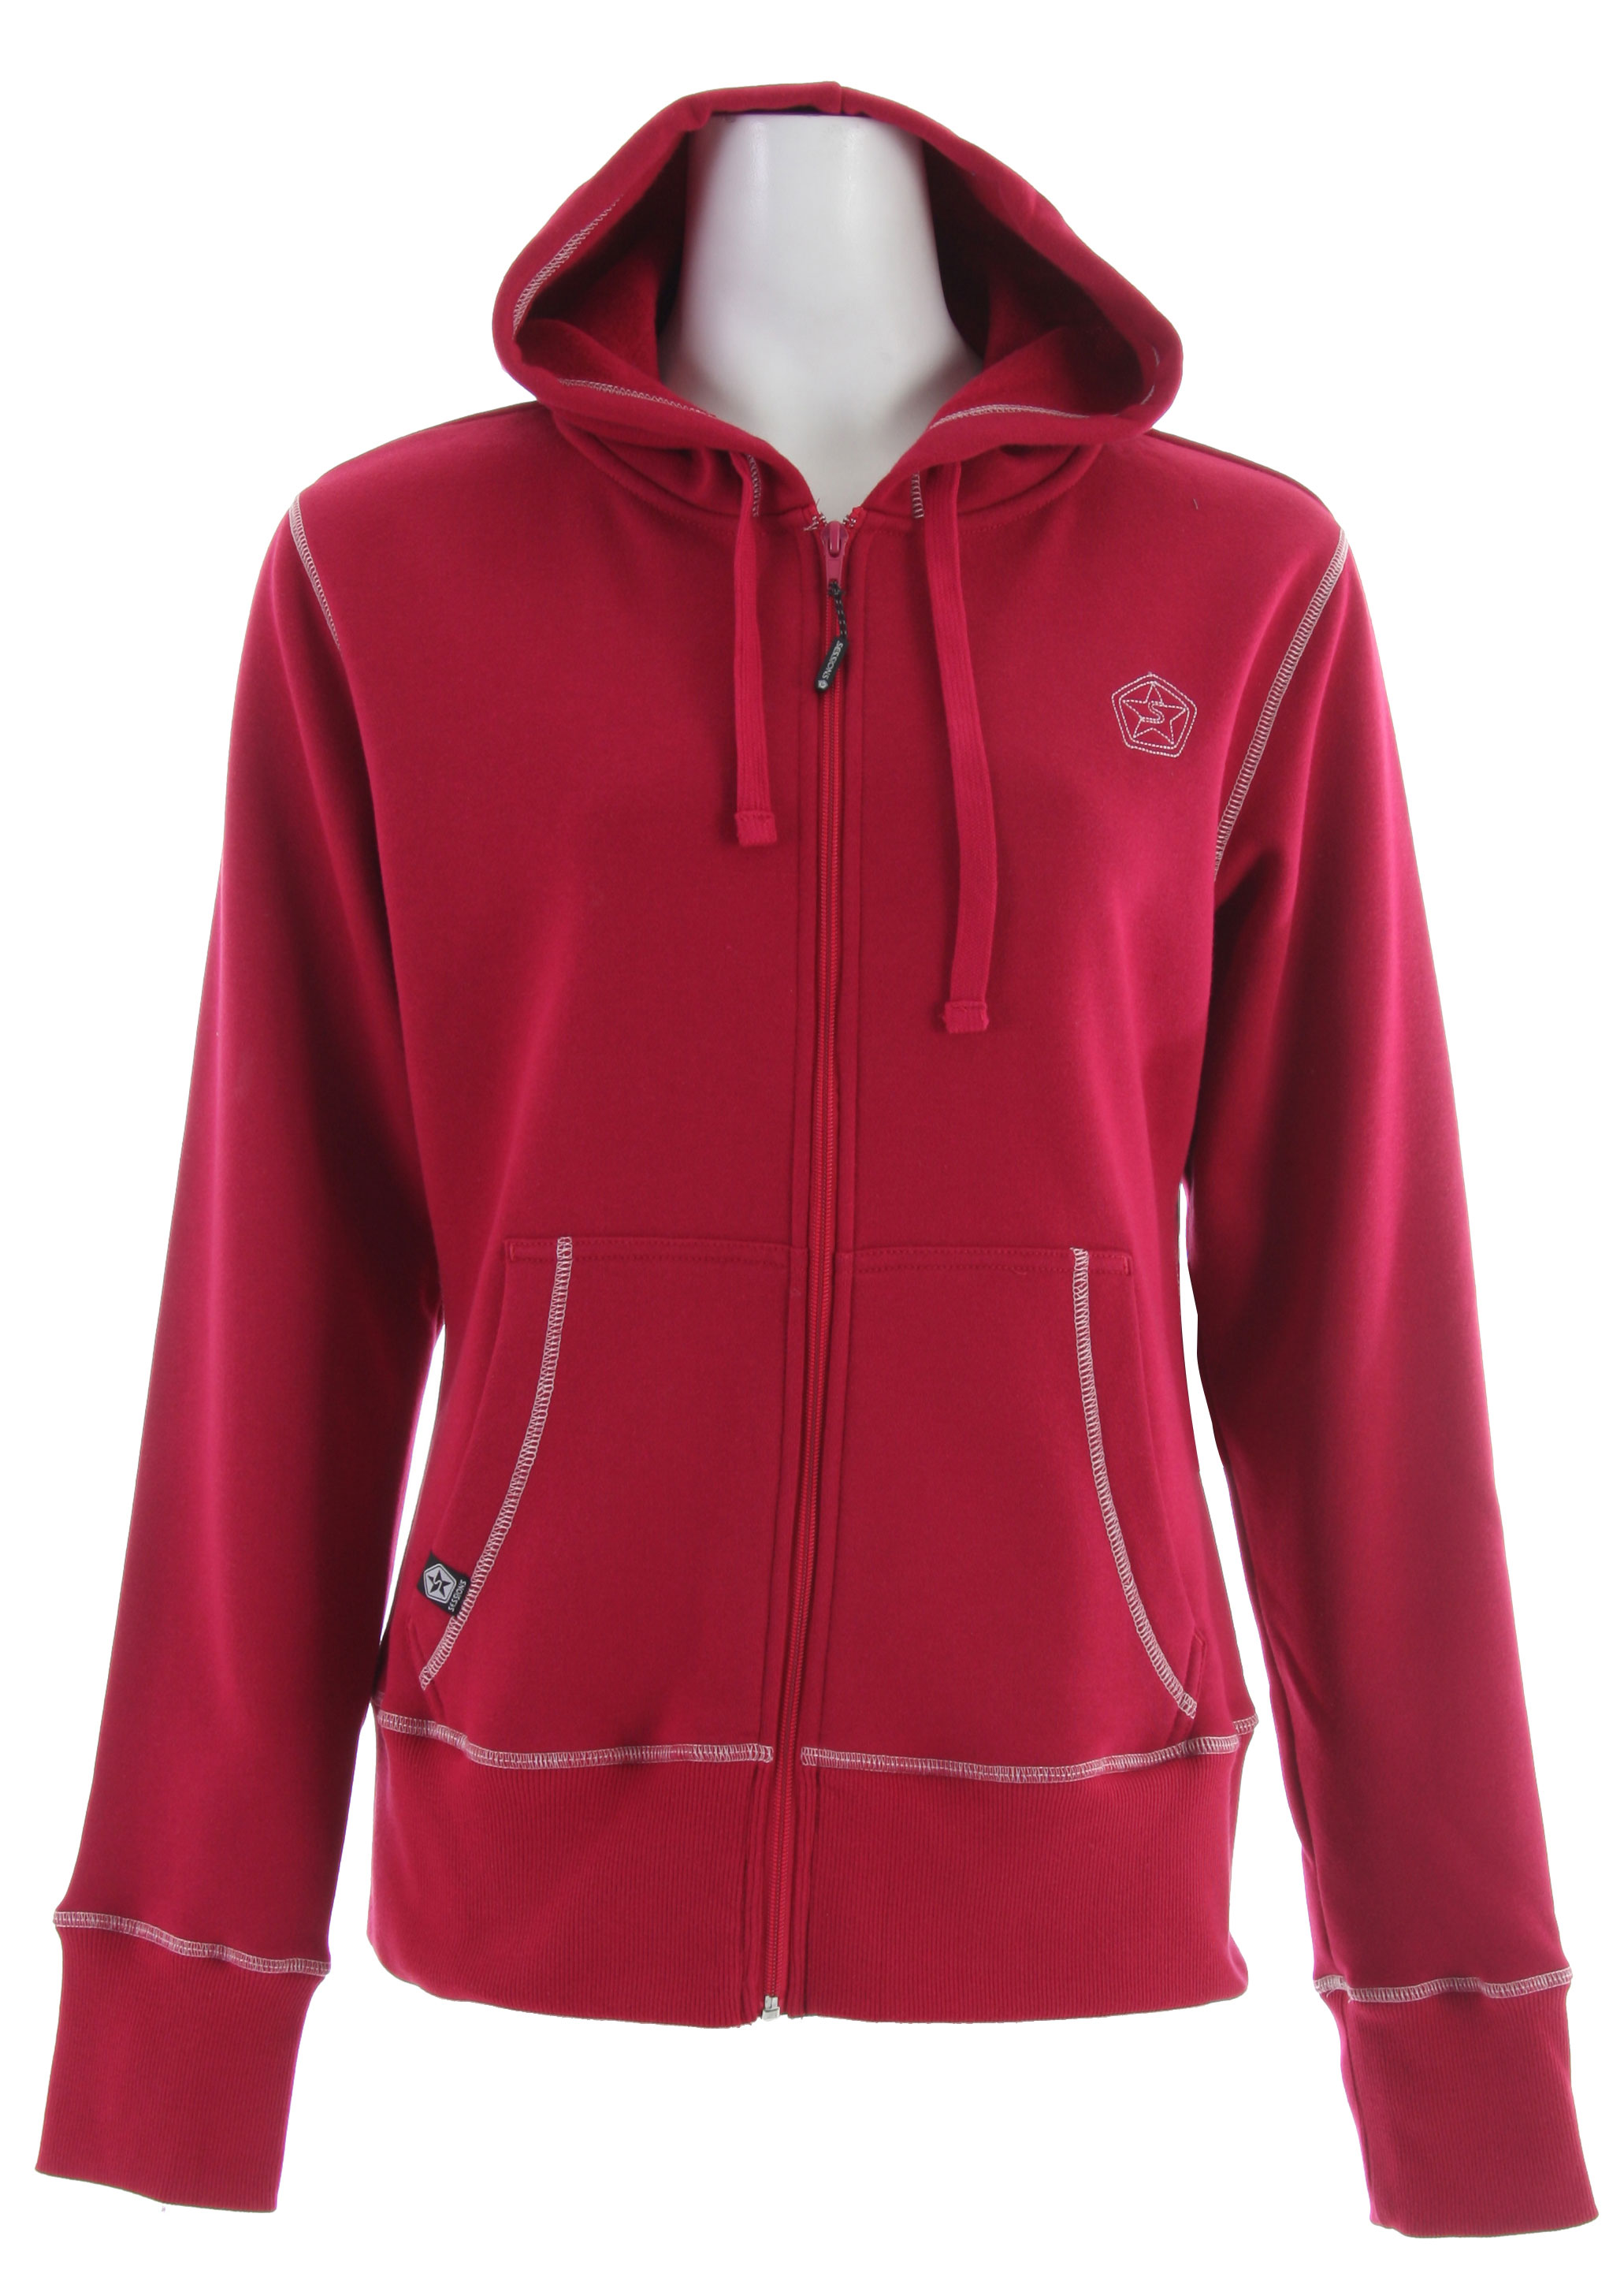 The Sessions Raw Hoodie is a women's fleece lined hoodie with an embroidered logo. - $26.95